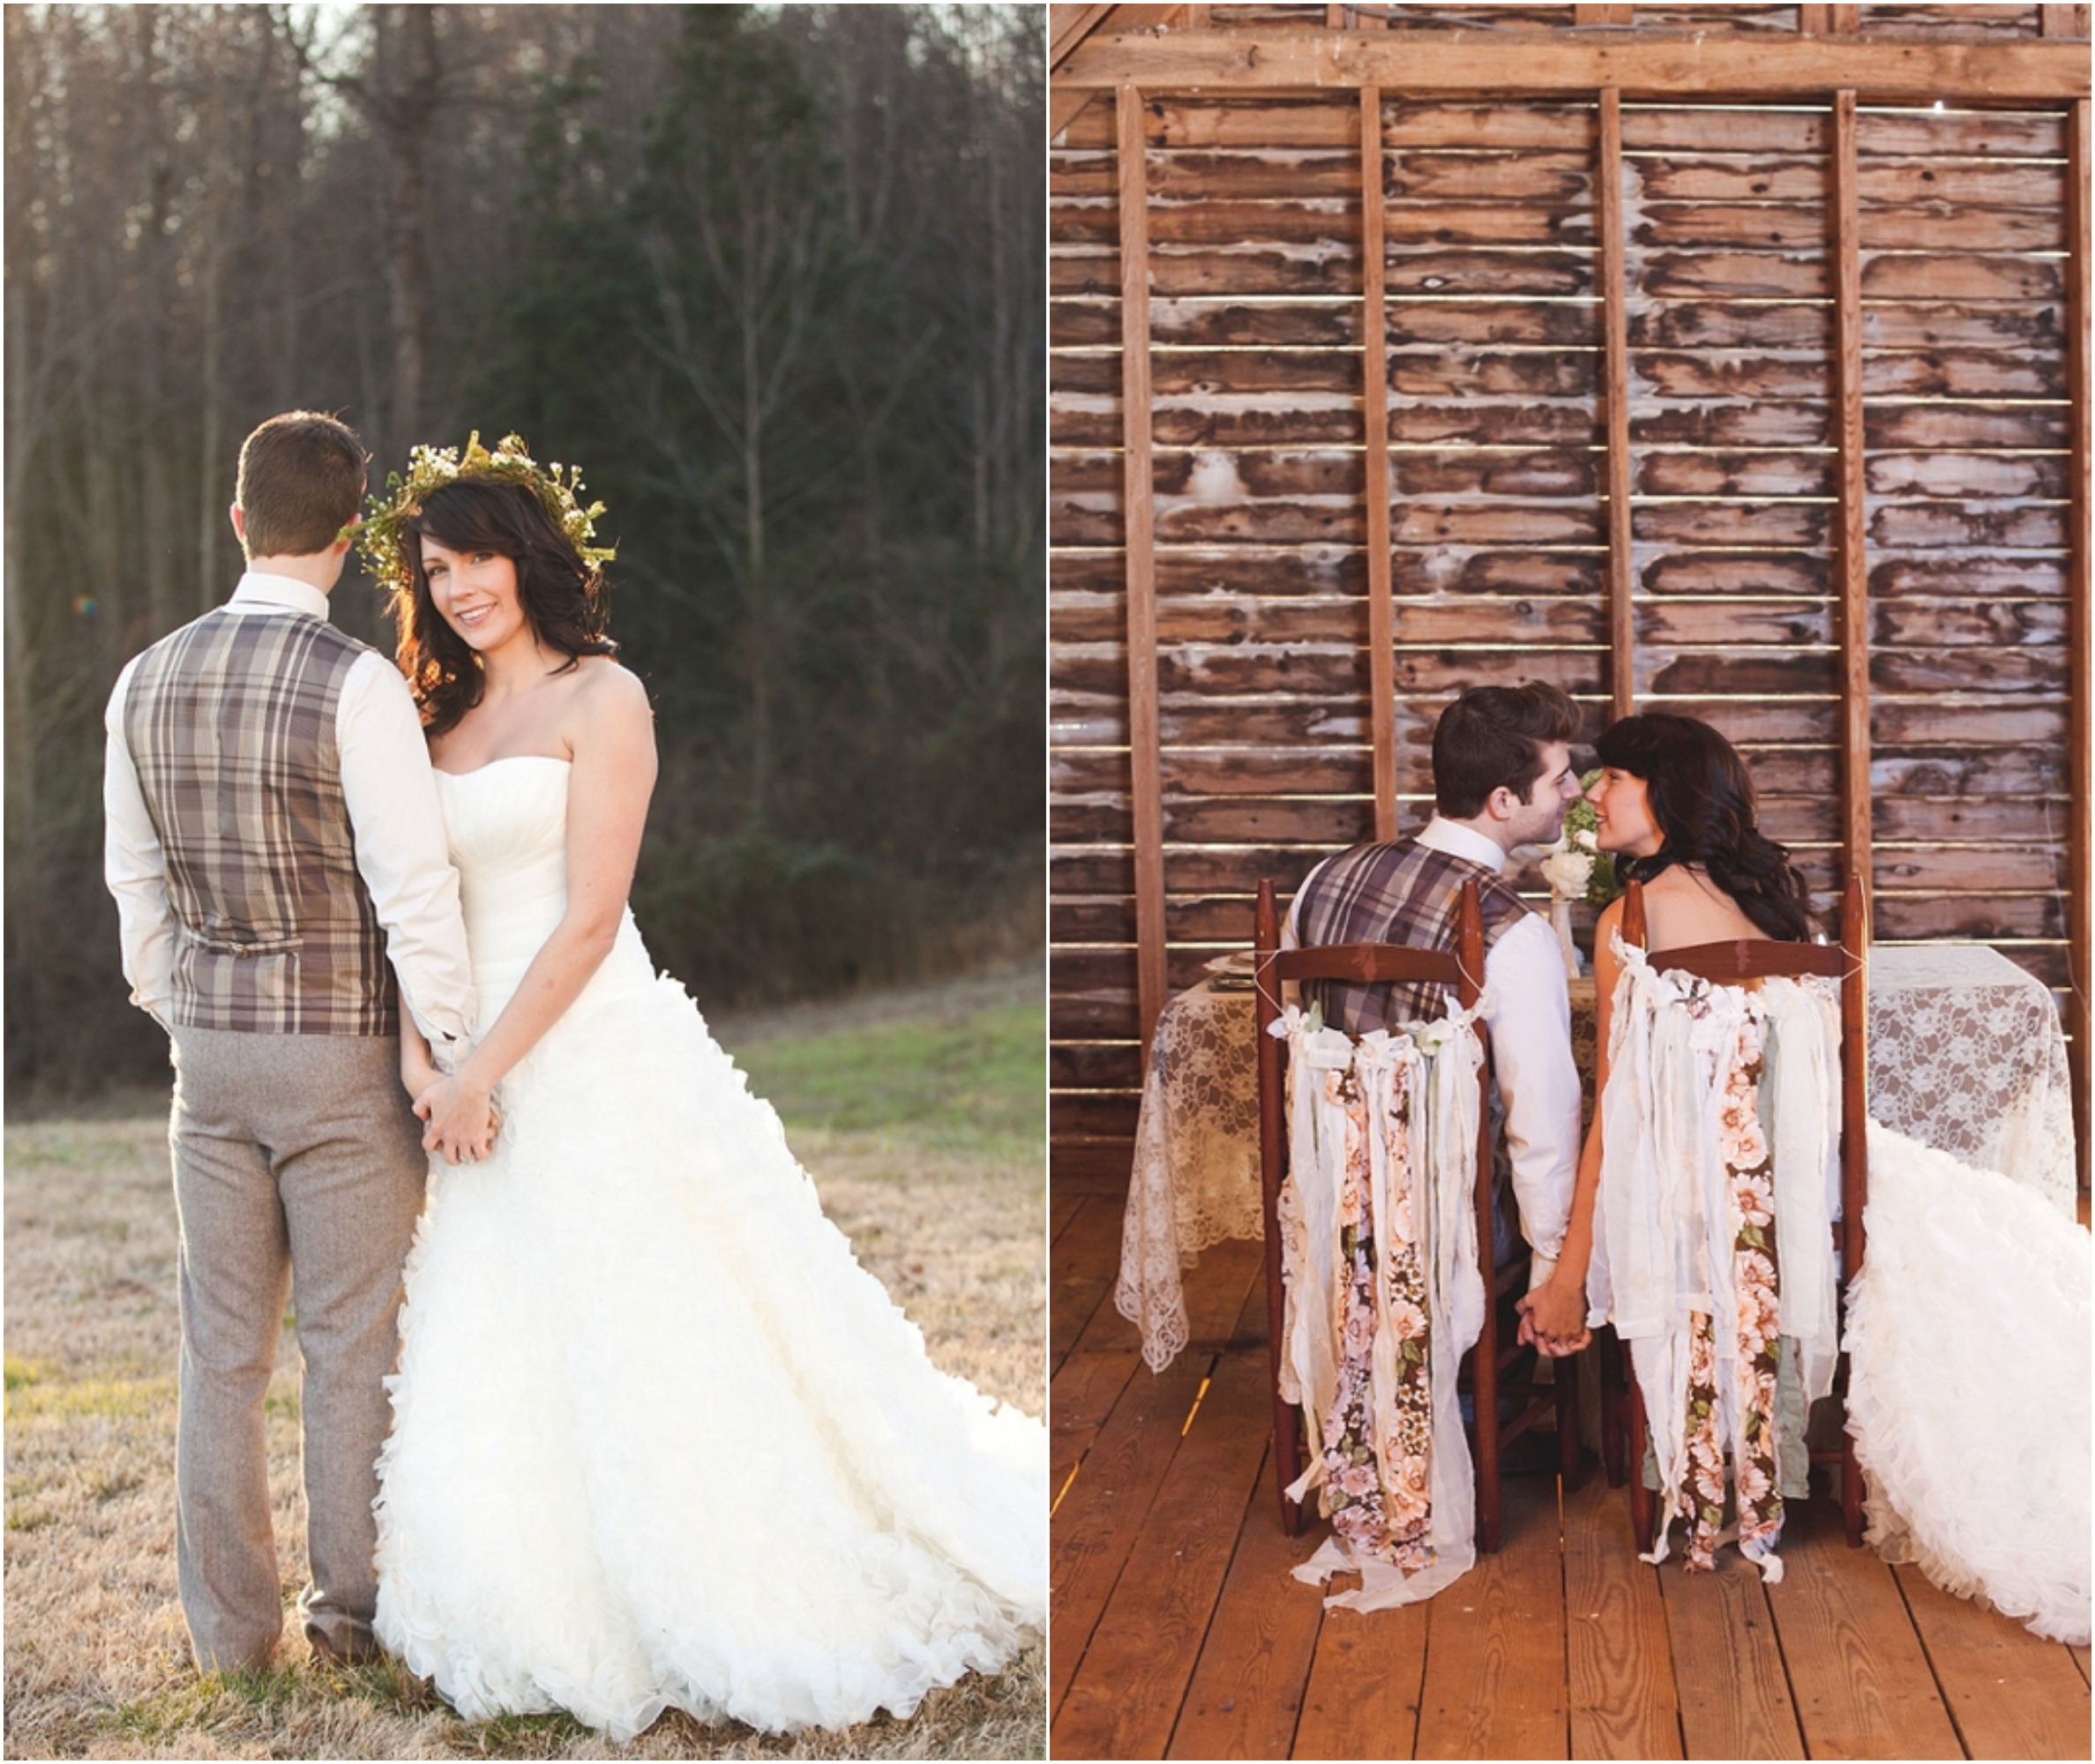 Rustic Wedding Gifts For Bride And Groom : Romantic Rustic Wedding Inspiration - Rustic Wedding Chic